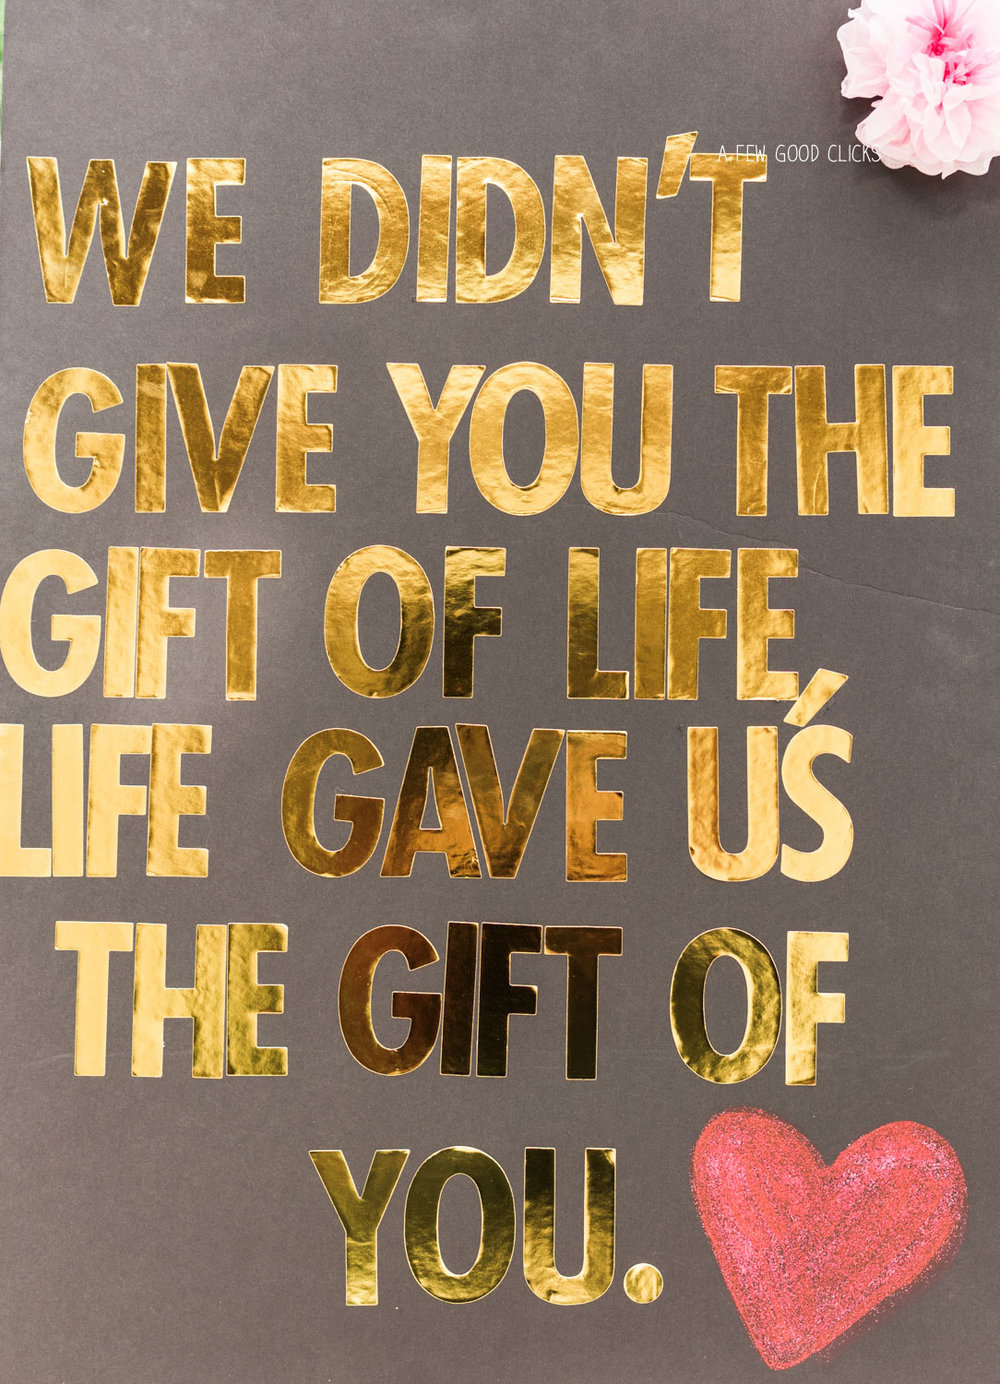 """ We didn't give the gift of life, life gave us the gift of you"". So true!"